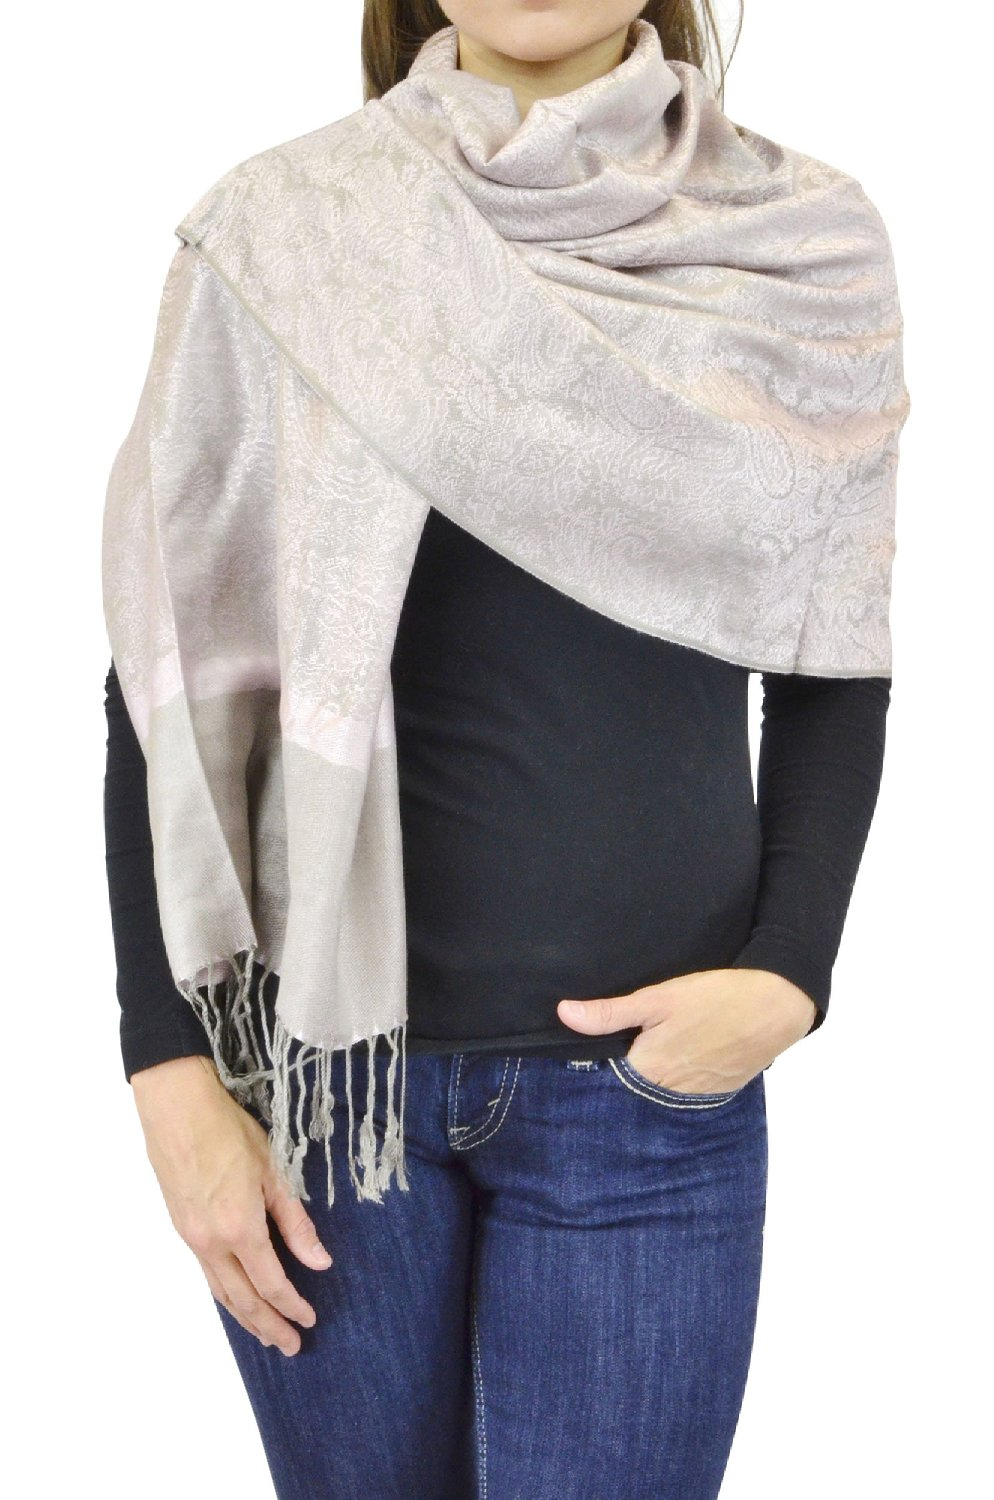 Belle Donne Women's Paisley Pashmina Shawl Wrap Scarf - Light Pink Gray